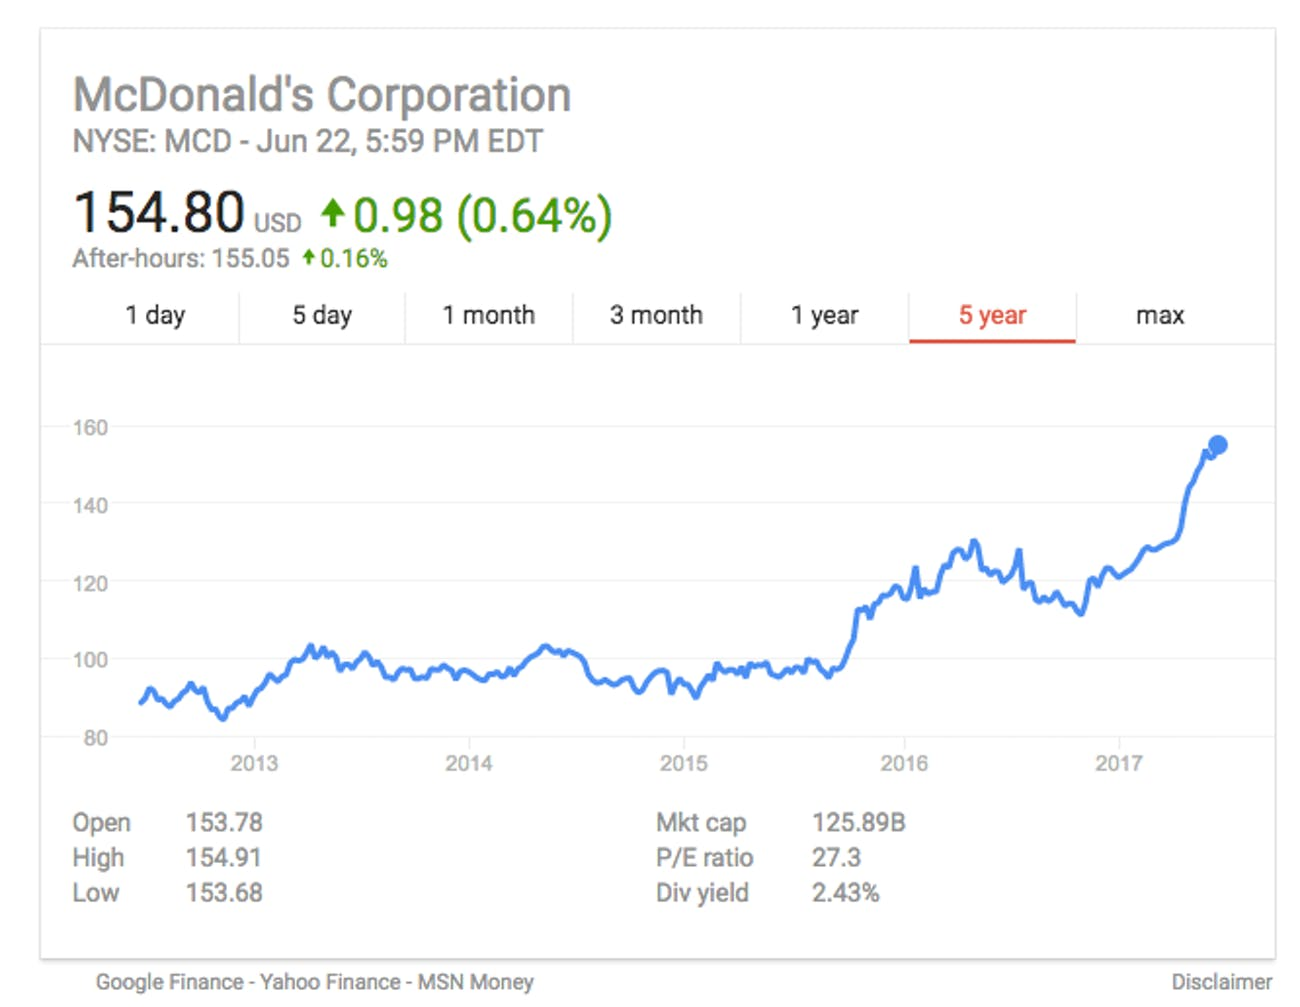 McDonald's Stock Hits All-Time High After Kiosks Prediction